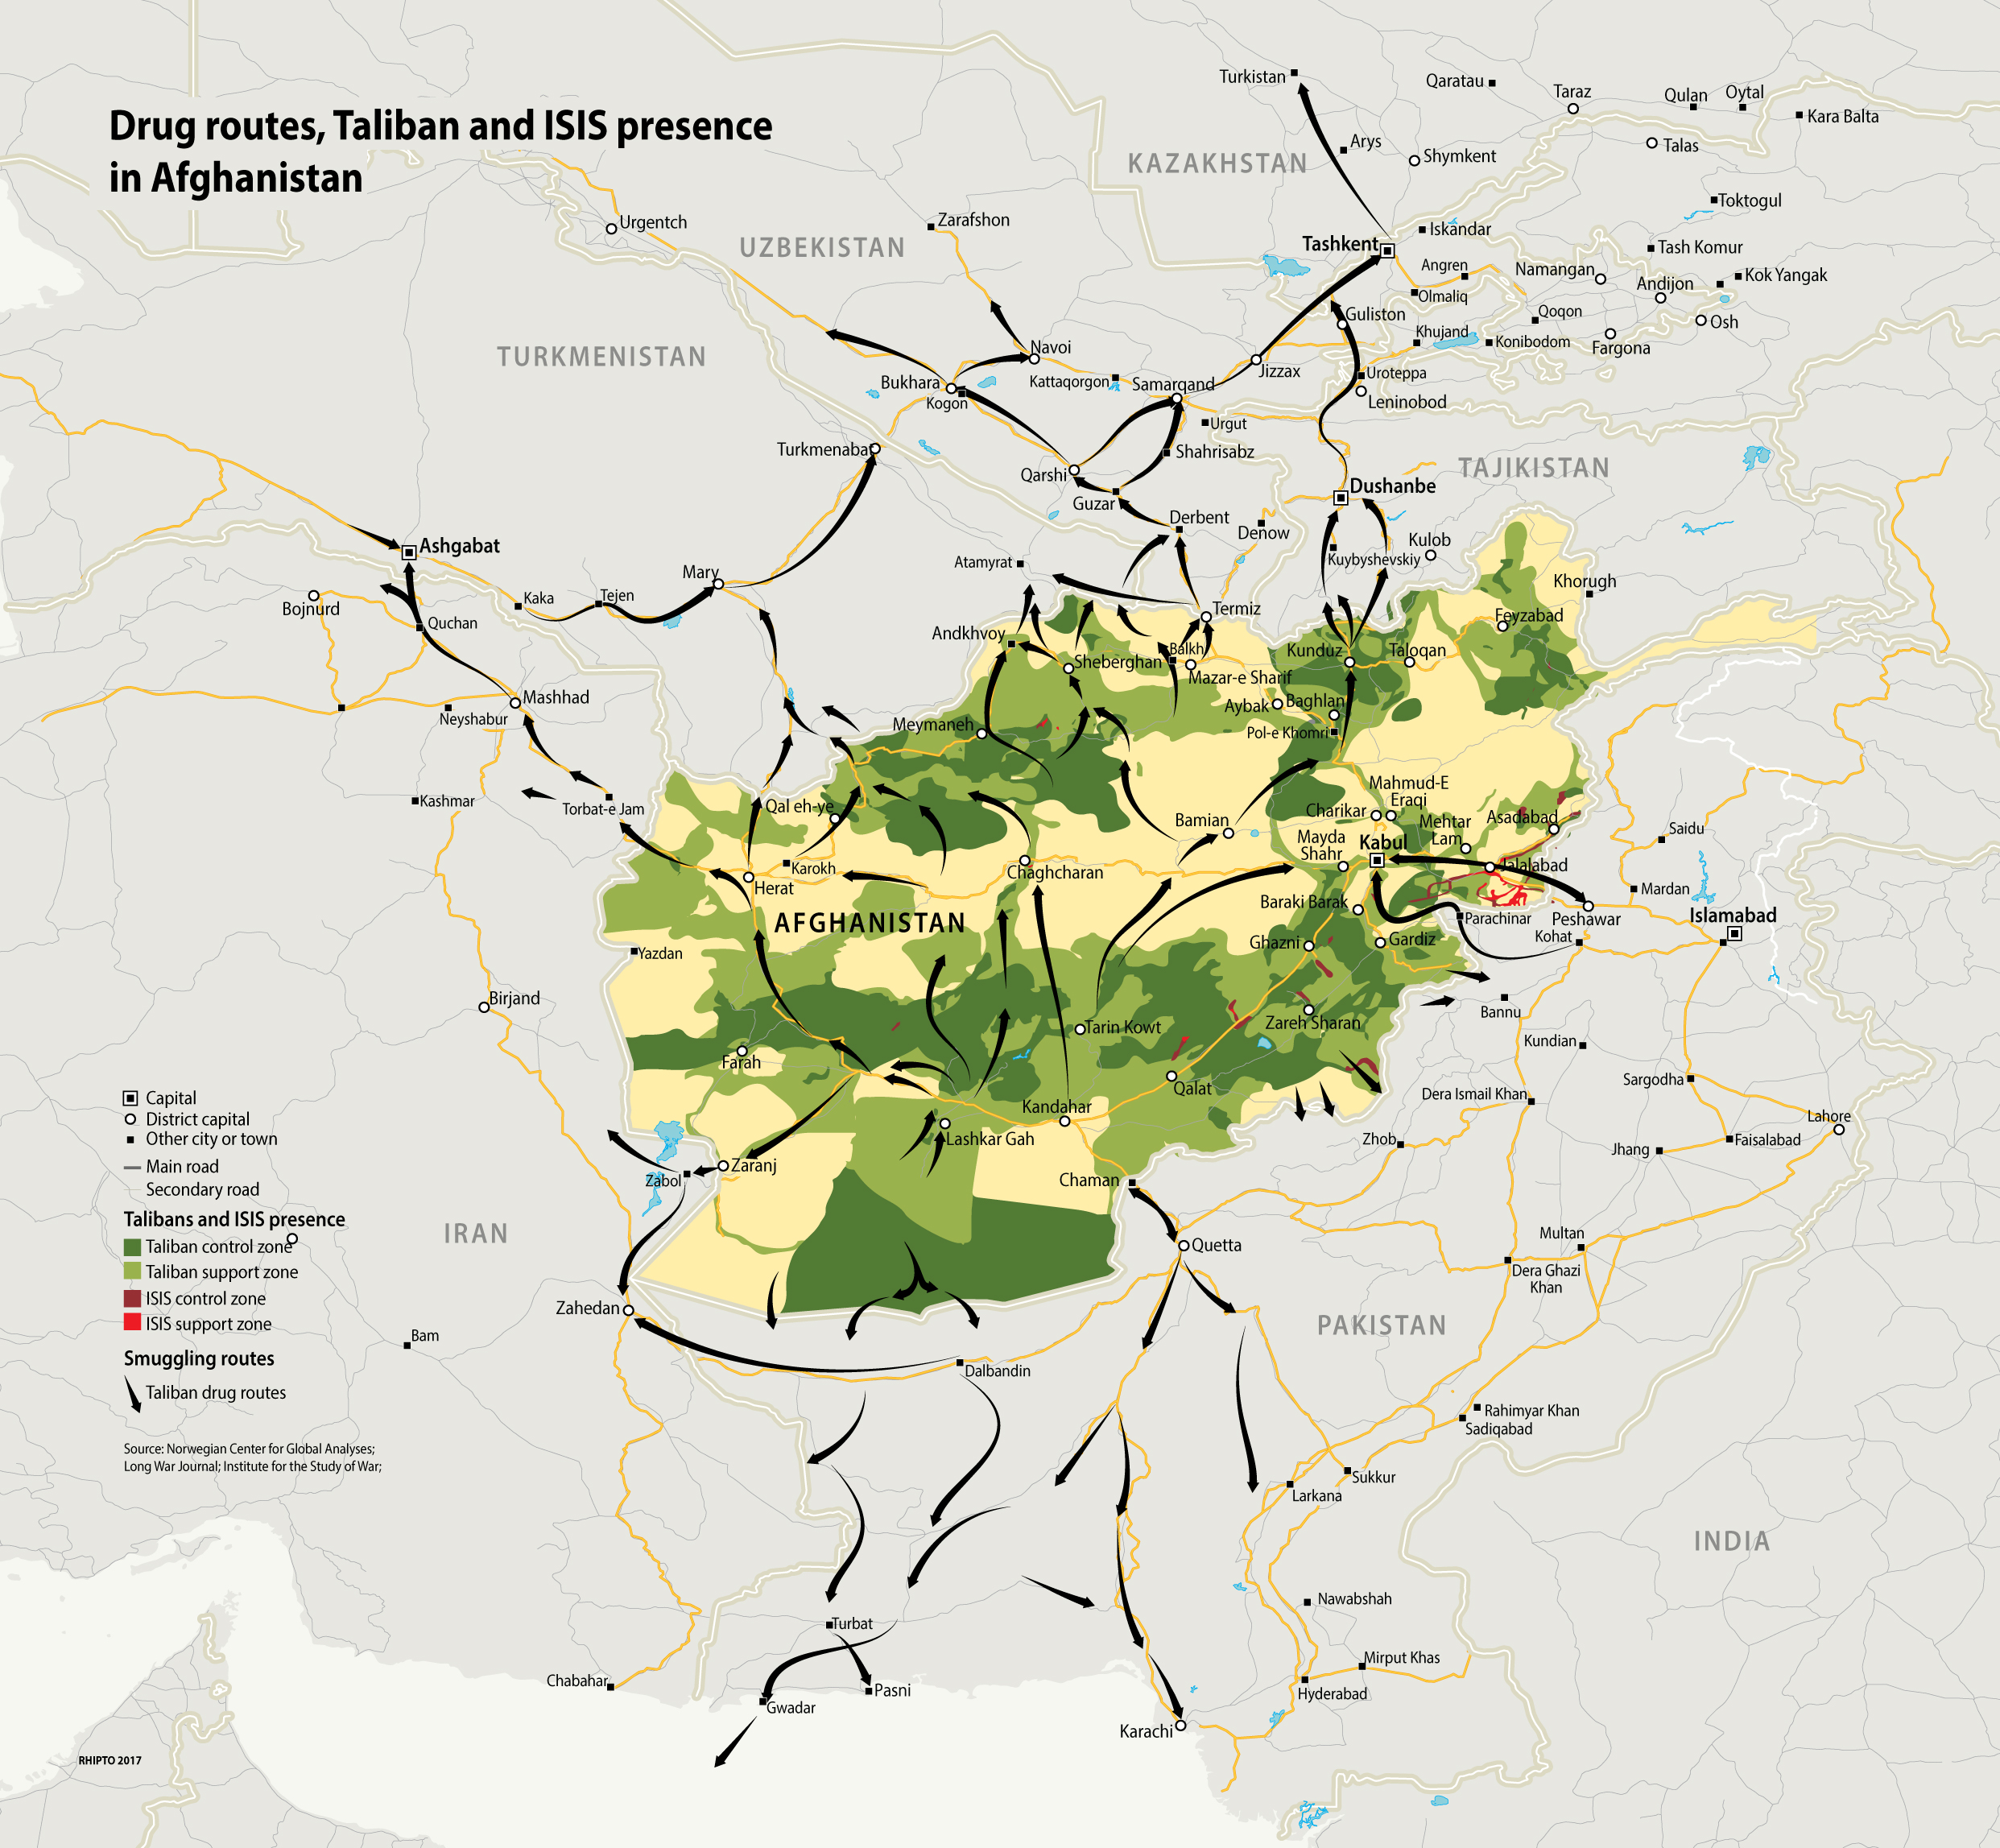 Afghanistan: Drugs, Talibans and IS